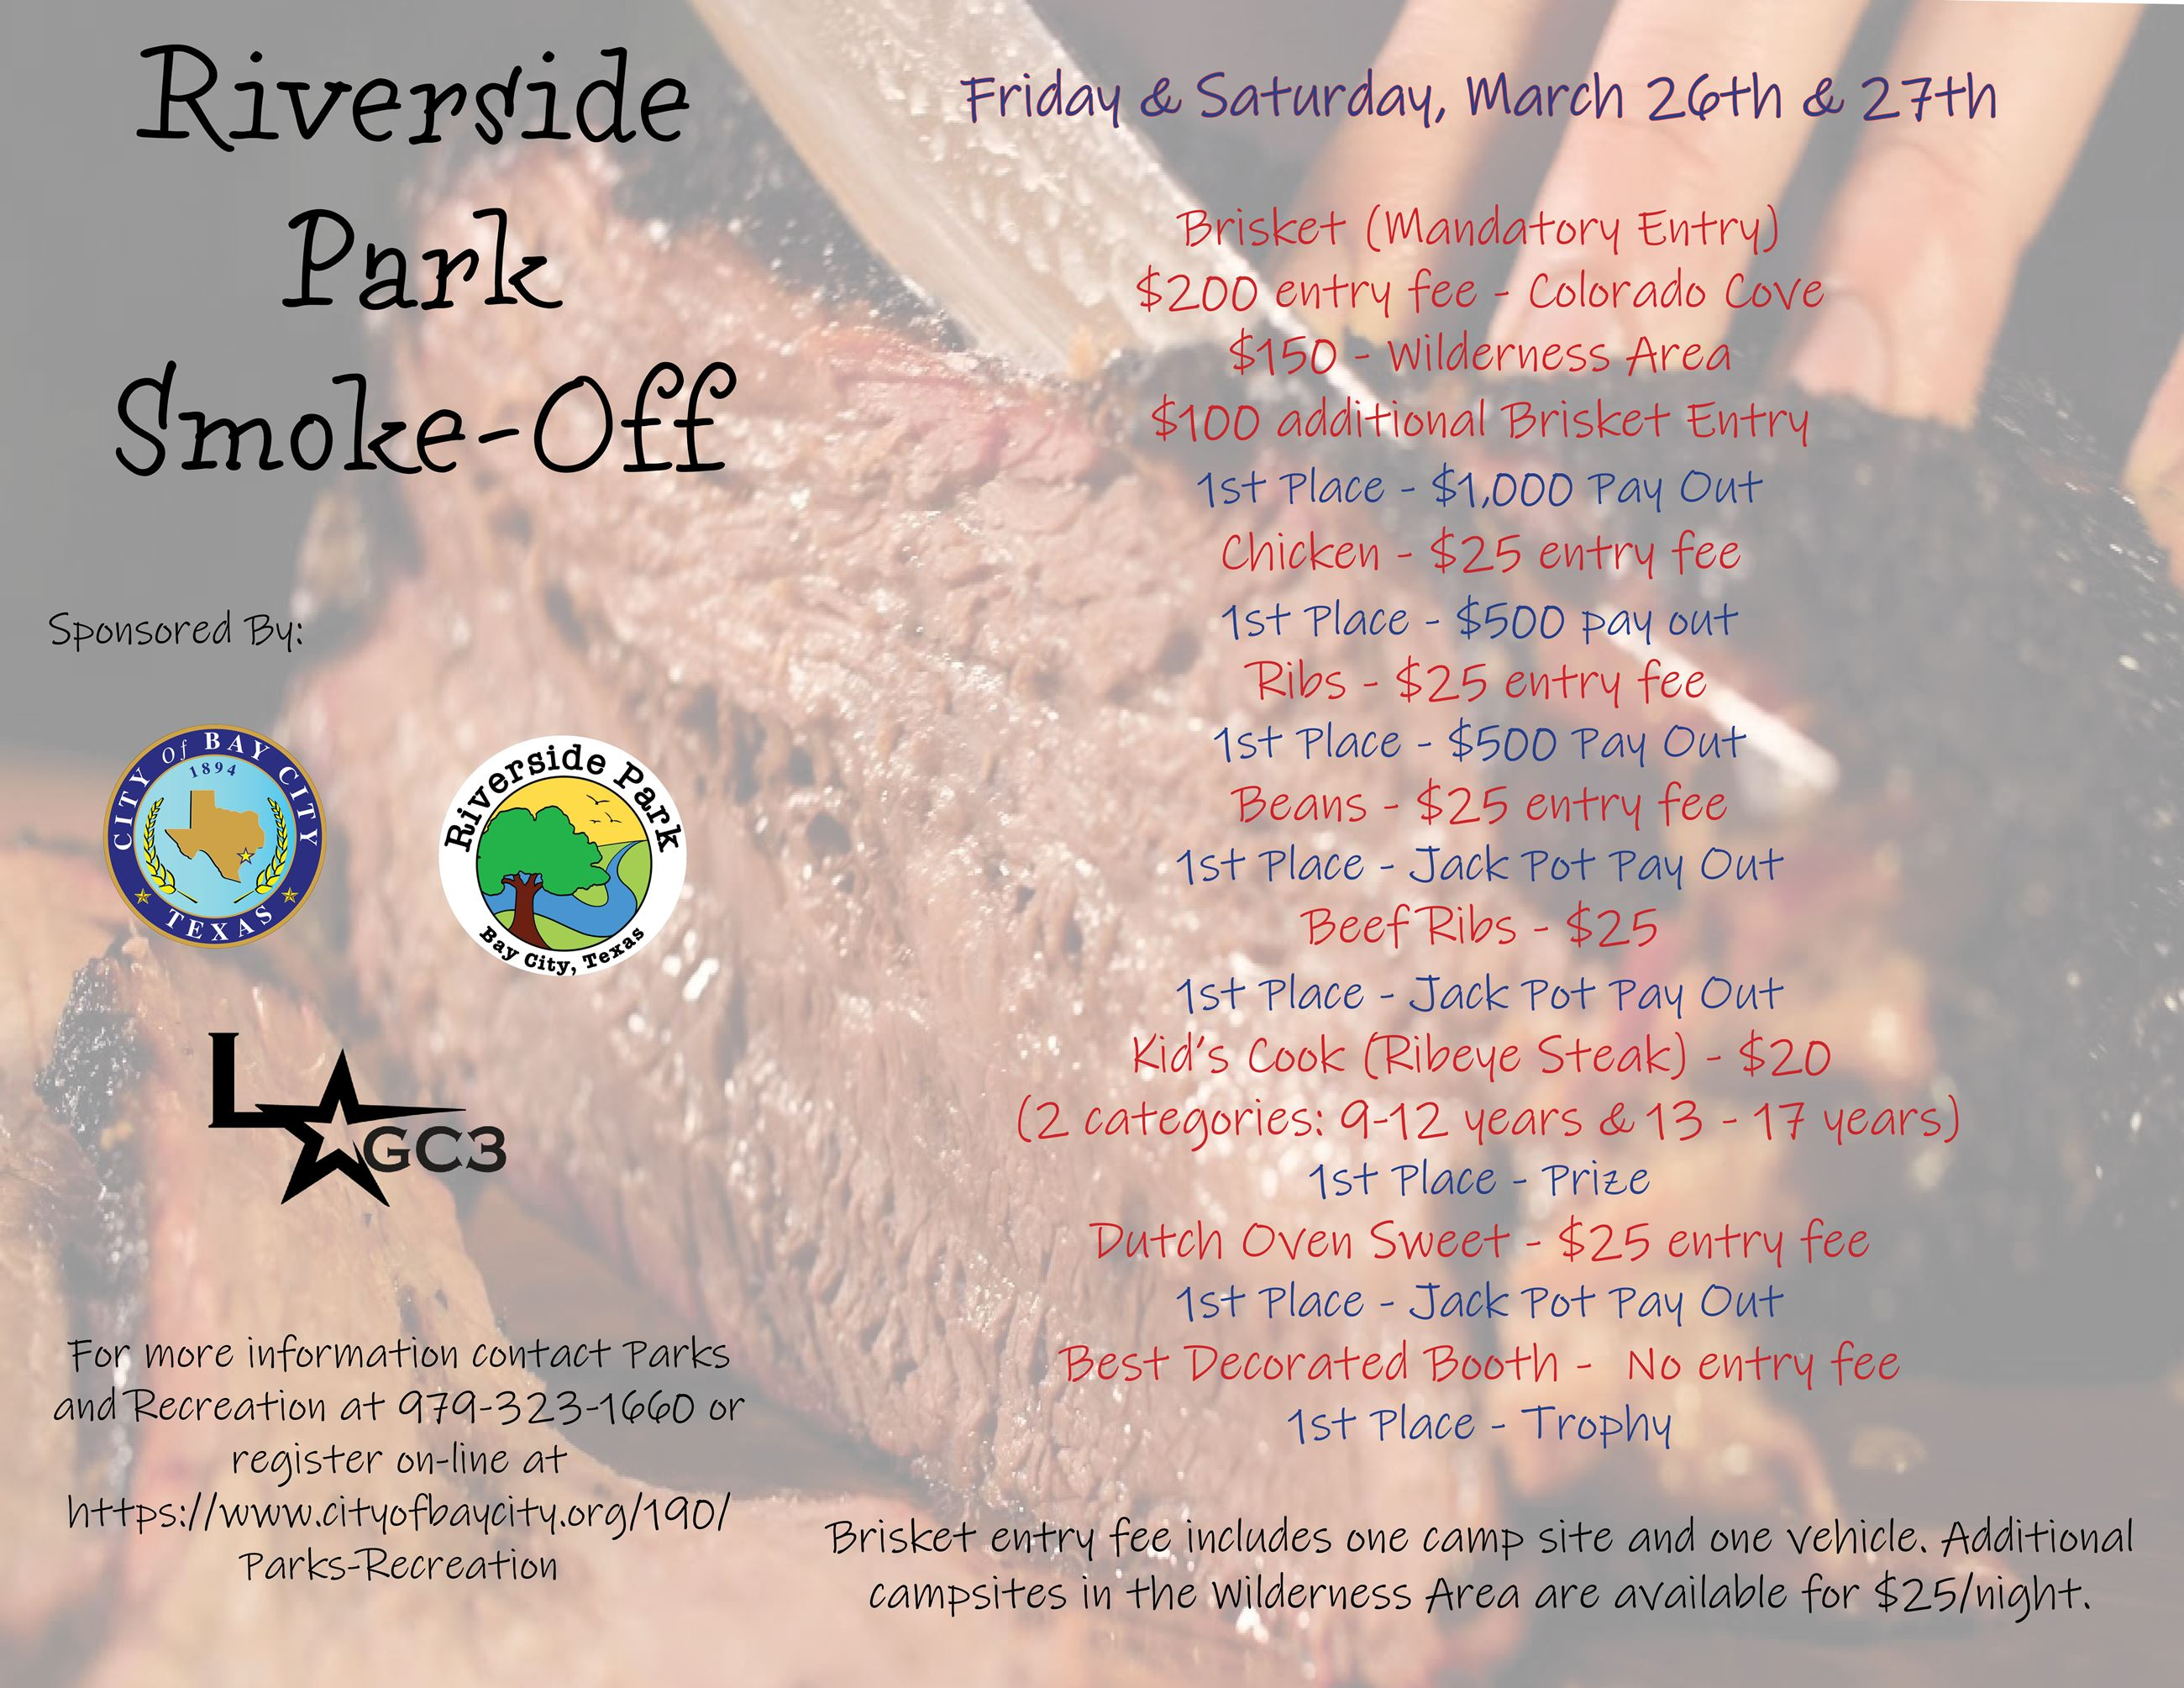 Flyer with information on the 2021 Riverside Smoke Off Event